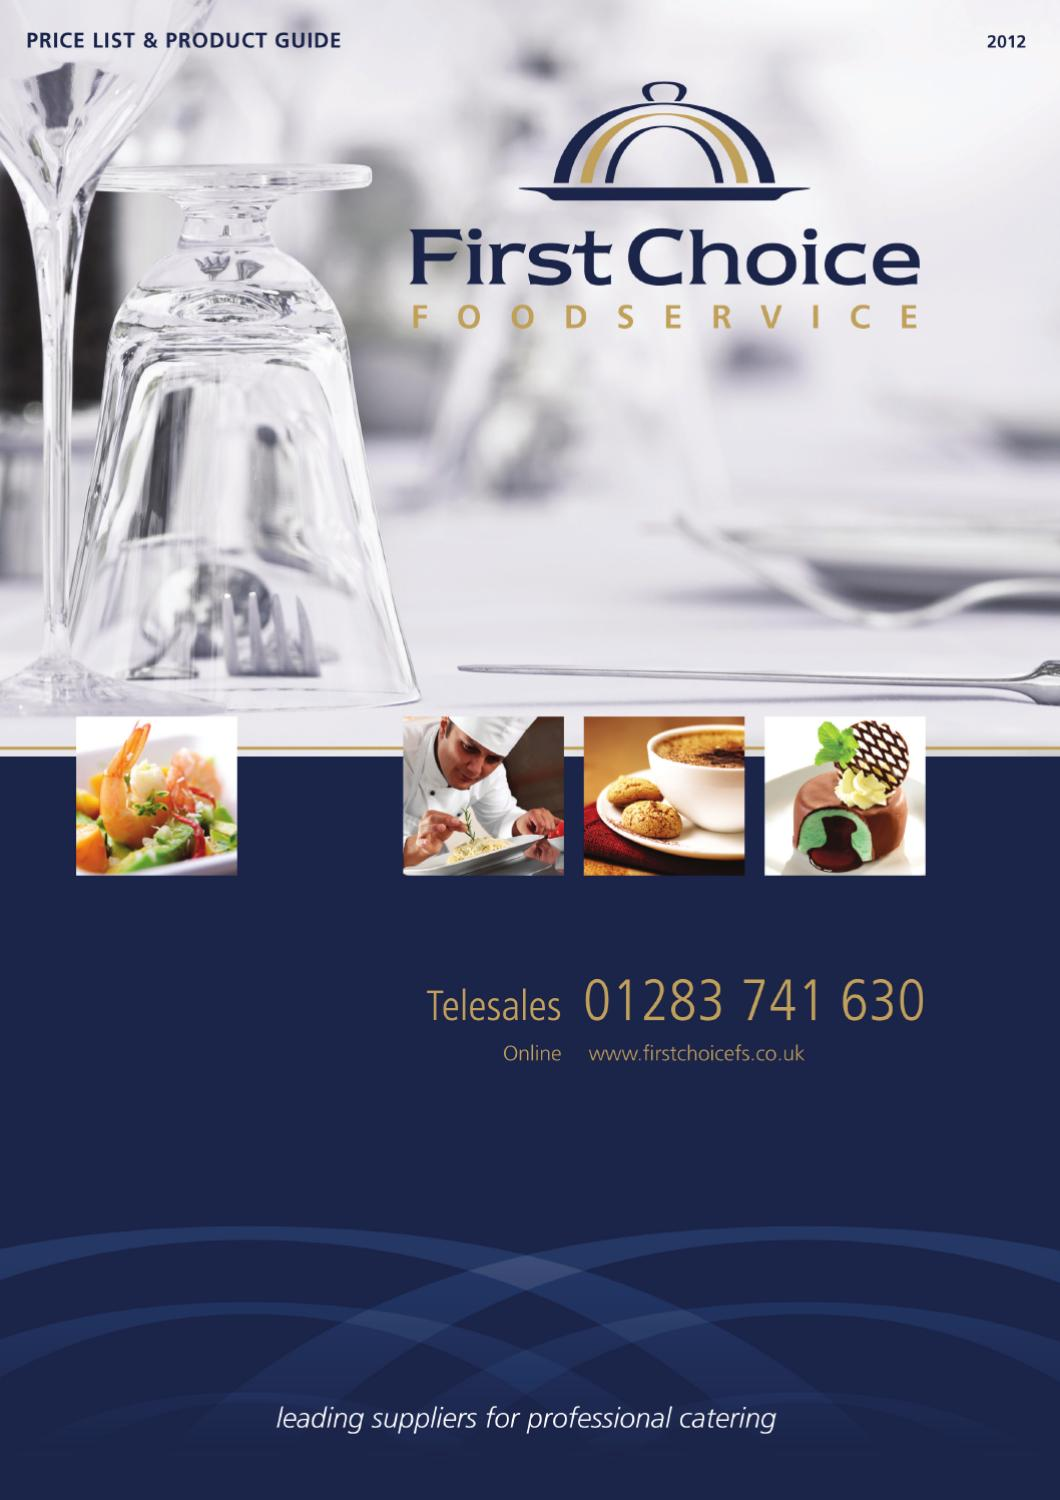 First Choice Food Service Ss2012 By Infotech Studio Issuu Vienna Shampo Conditioner Blue Horse 2in1 Sachet